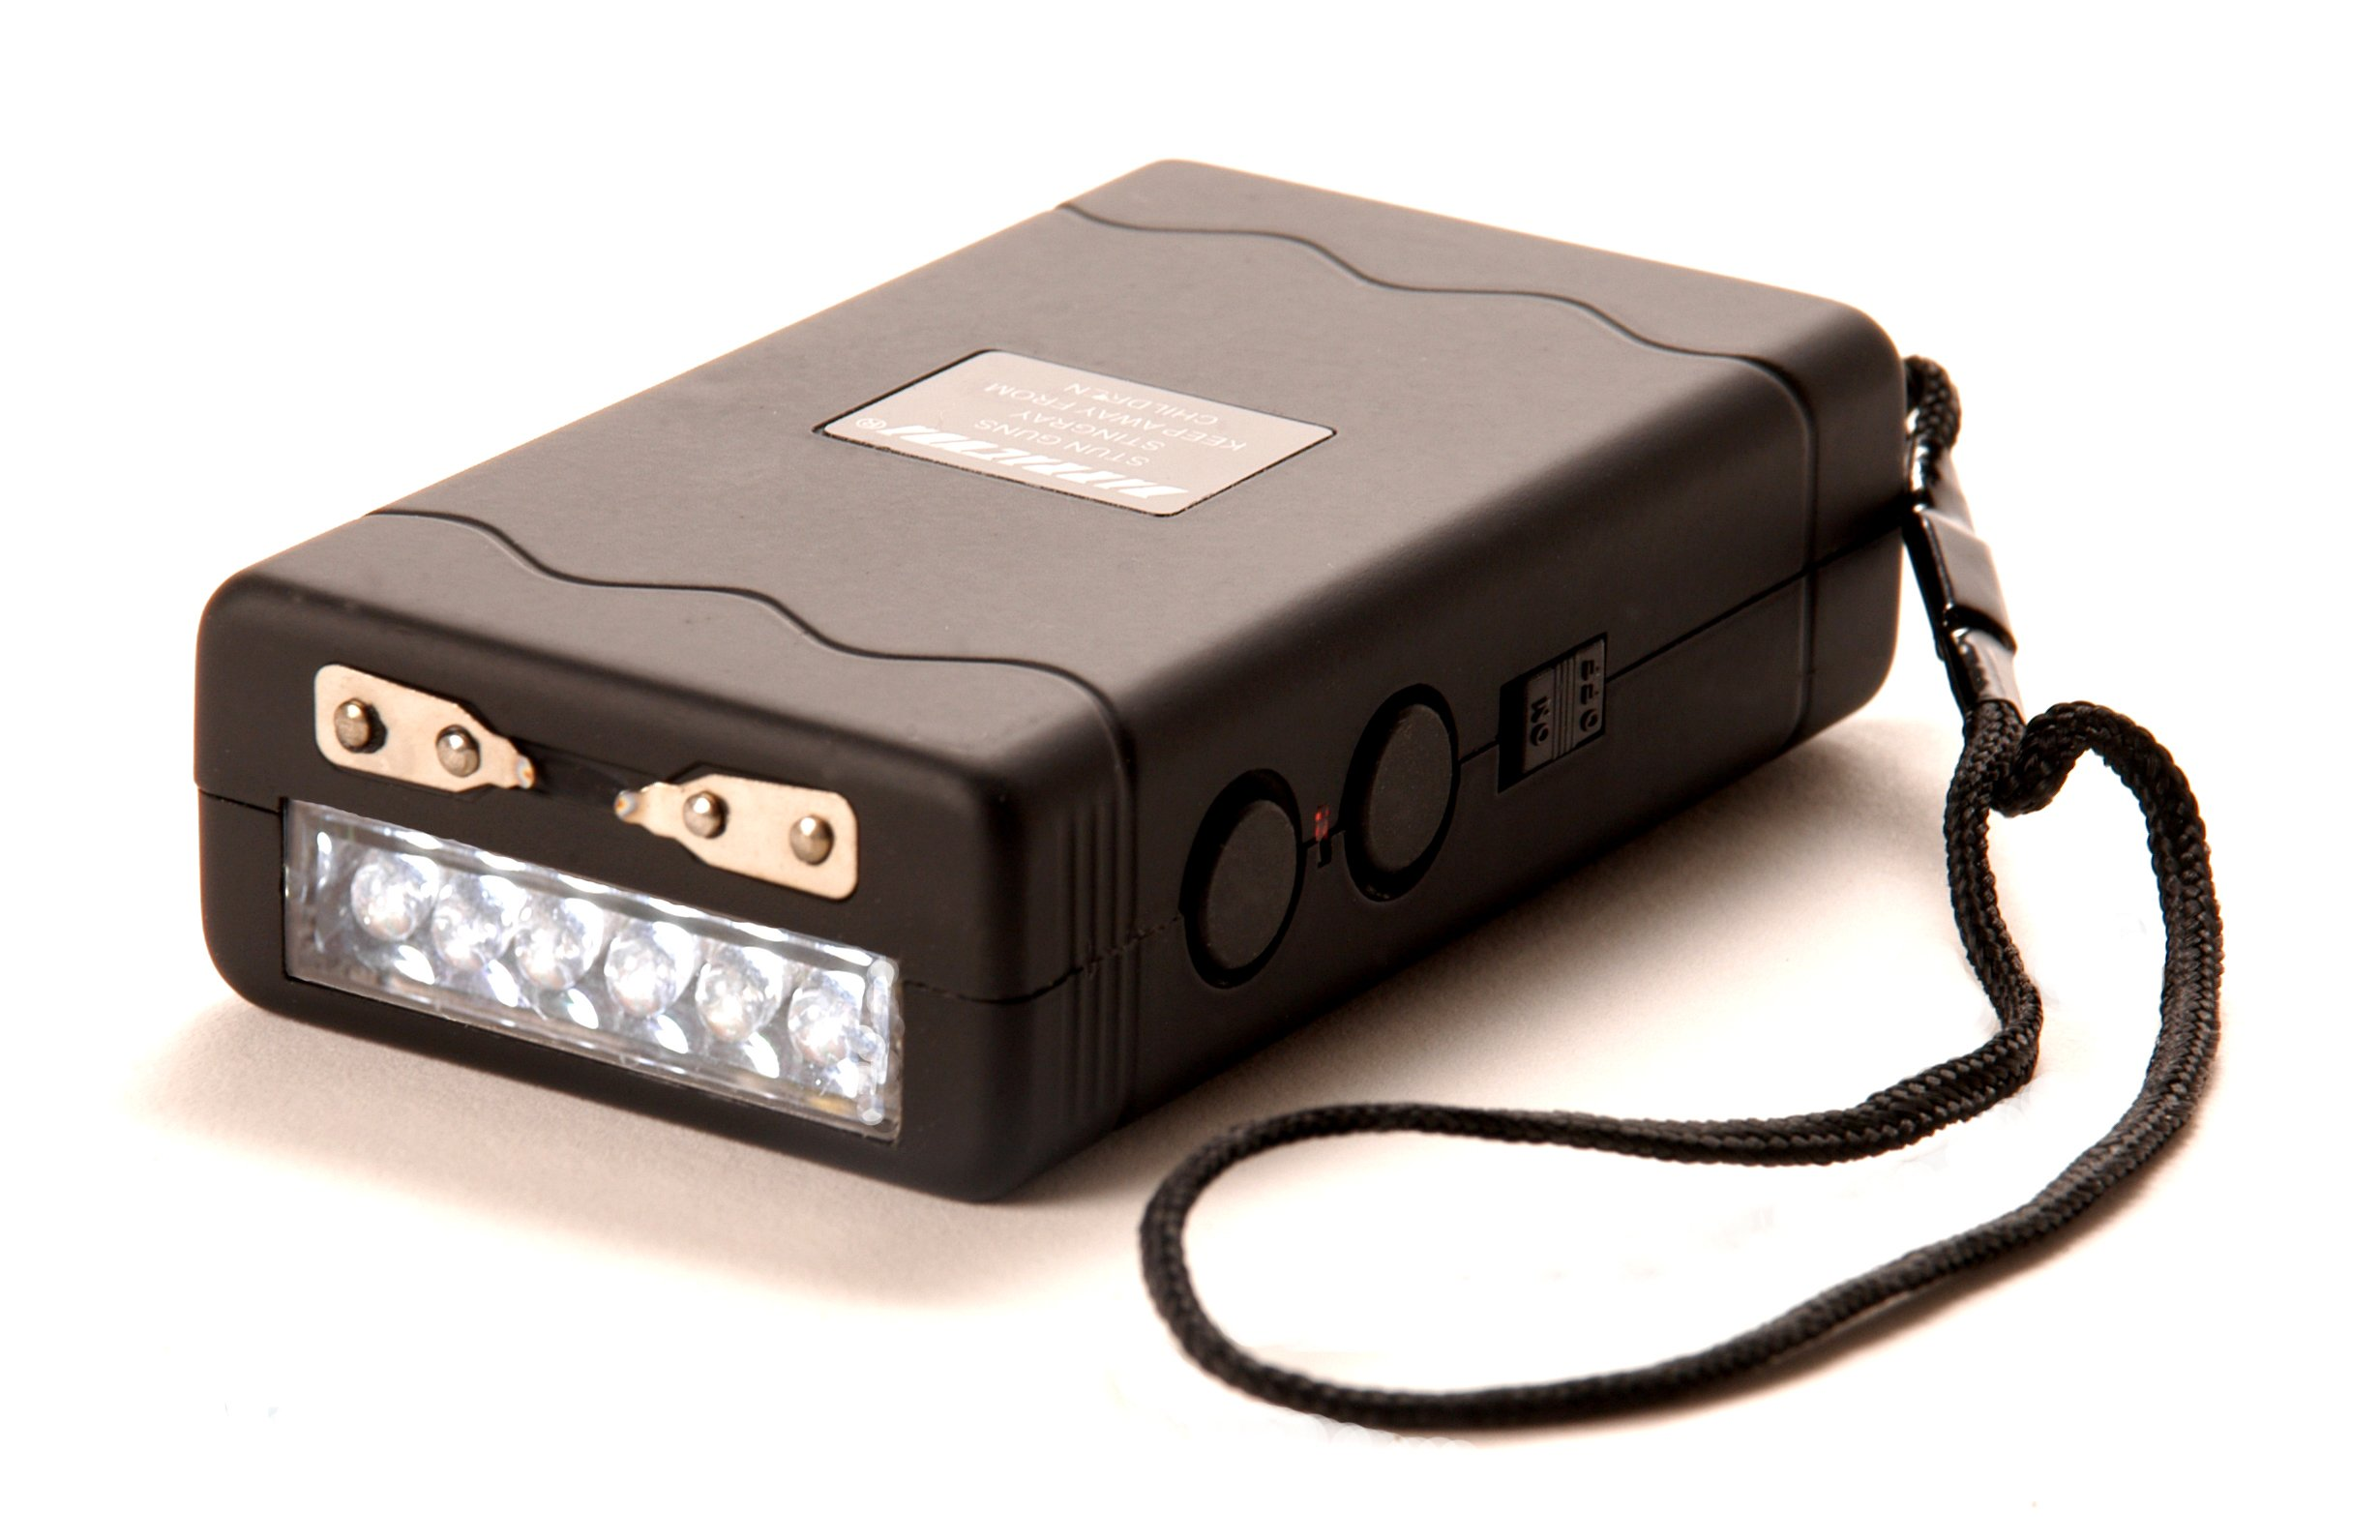 Barracuda Stingray Rechargeable Stun Gun with Safety/Disable Pin 6 LED Light by BARRACUDA STUN GUNS